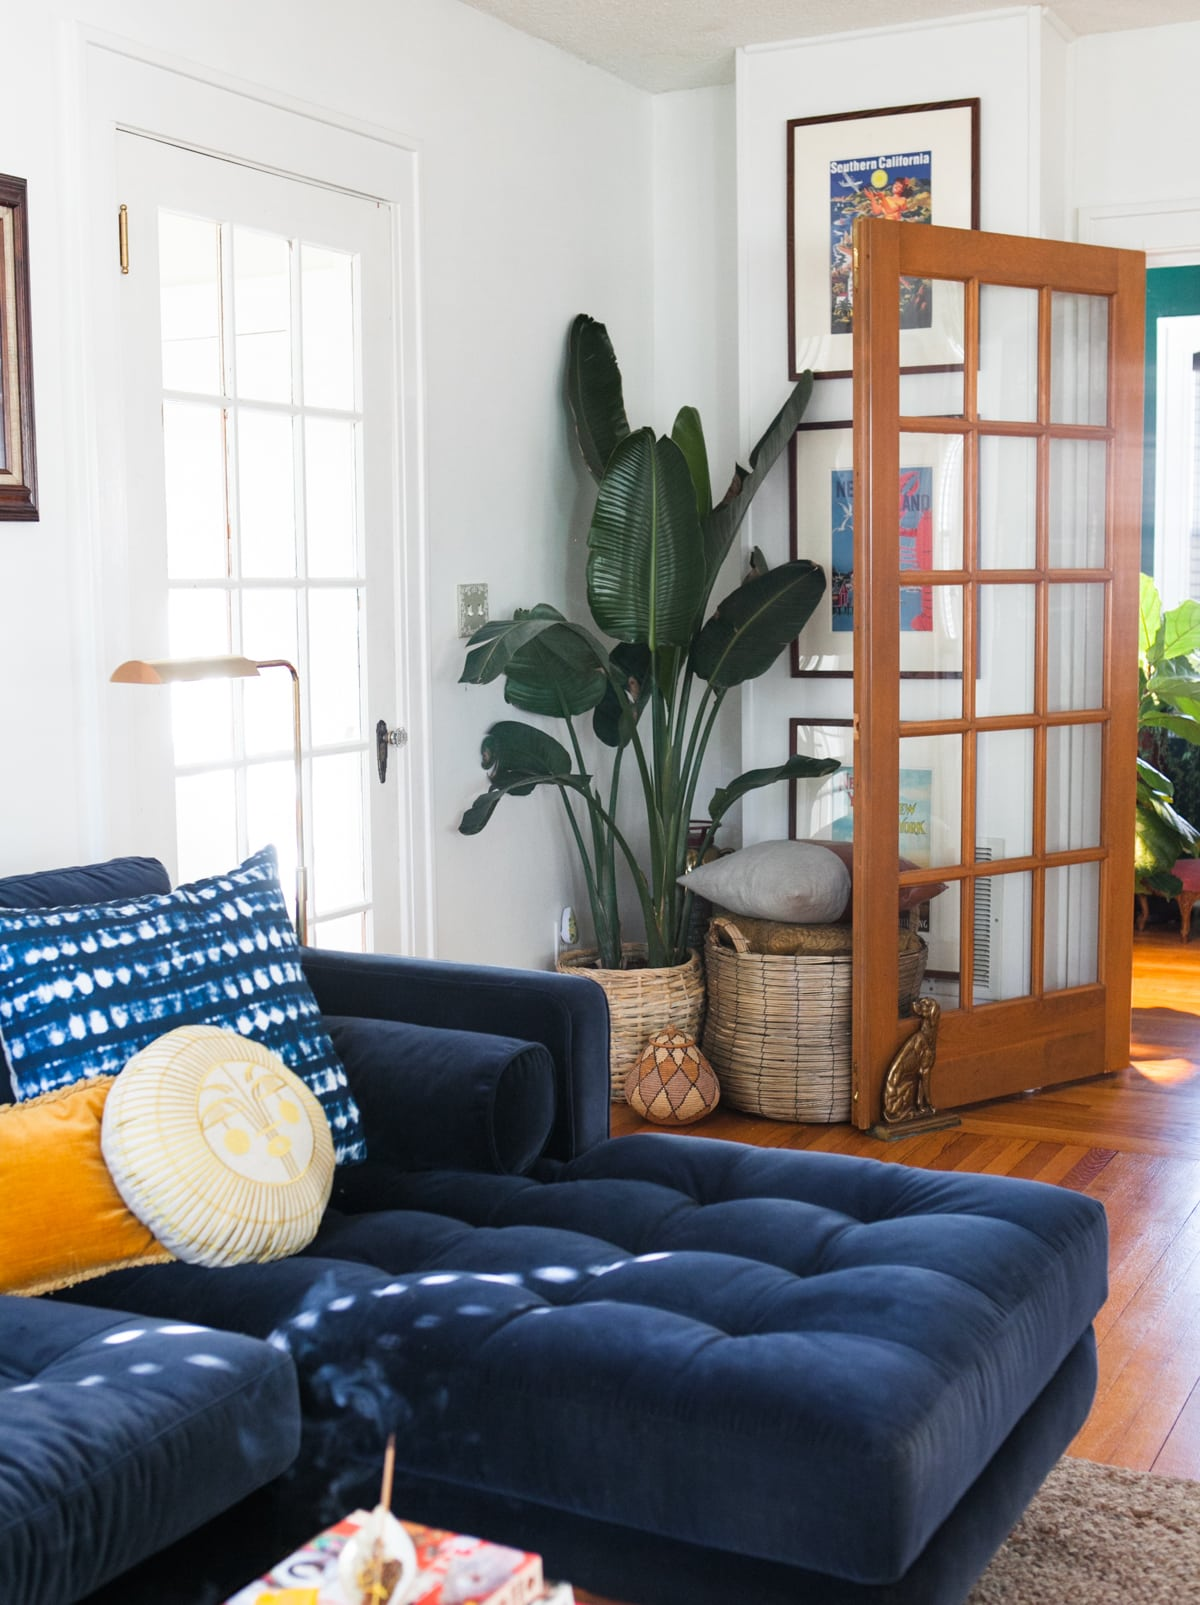 Modern Eclectic Glam Spring Home Tour 2018 | Jessica Brigham | Magazine Ready for Life